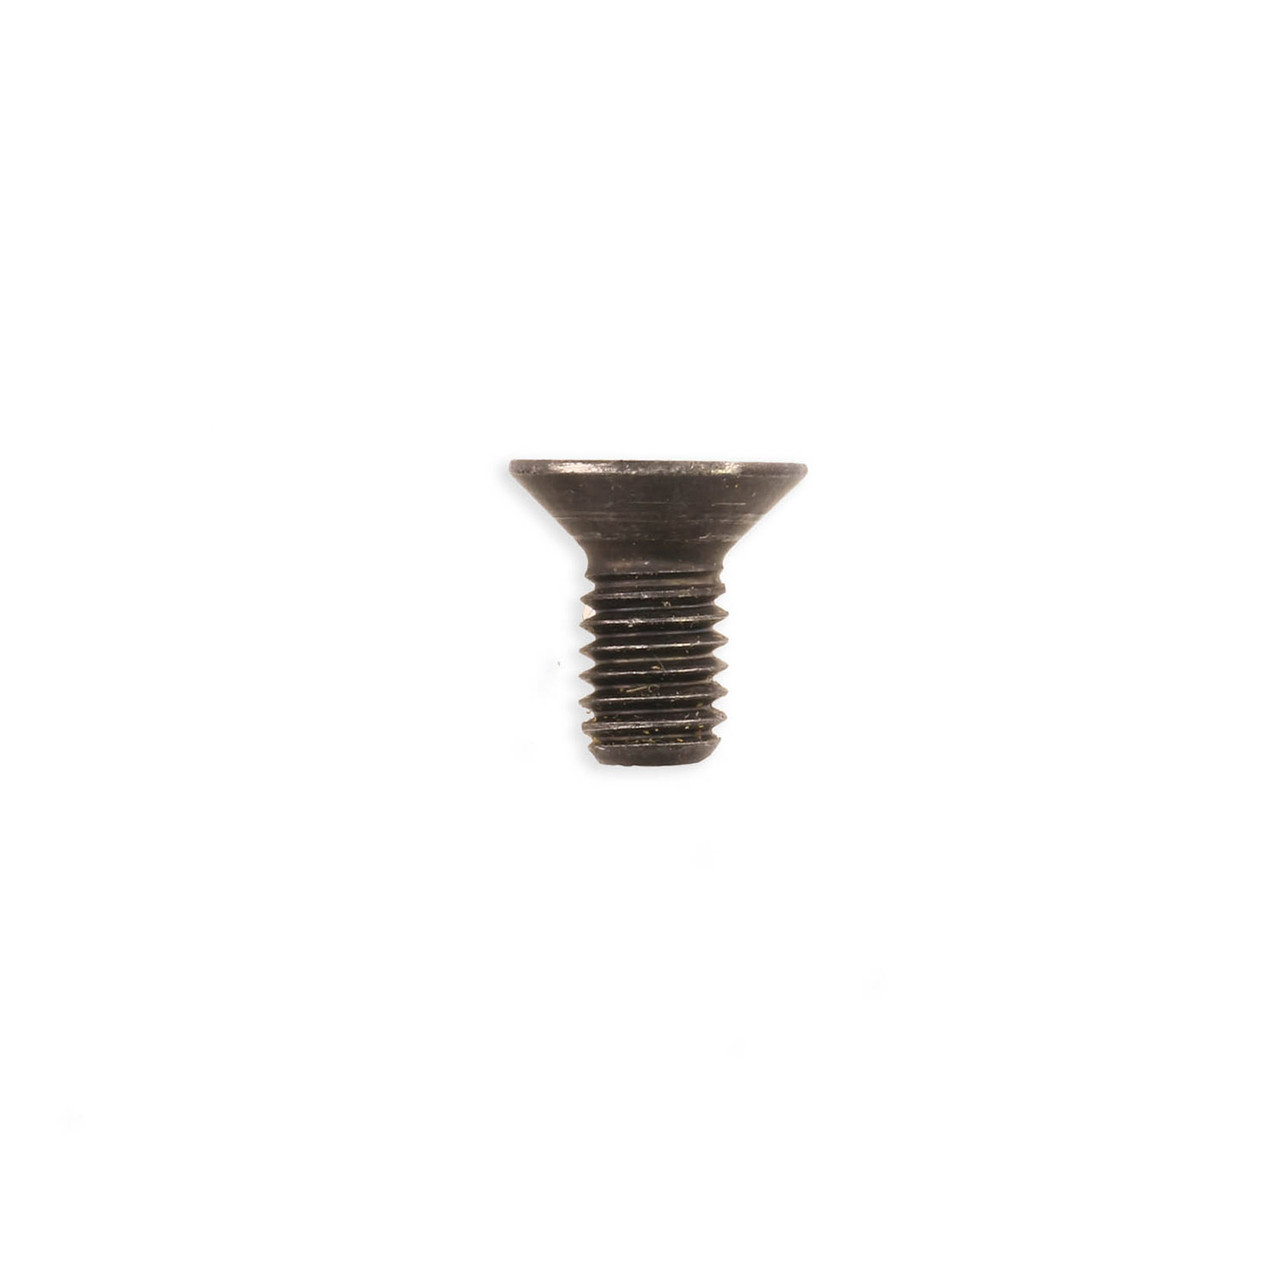 Hurricane Single Standard Replacement Screw for the HTC100/125 Chuck Standard and Large Dovetail Jaws